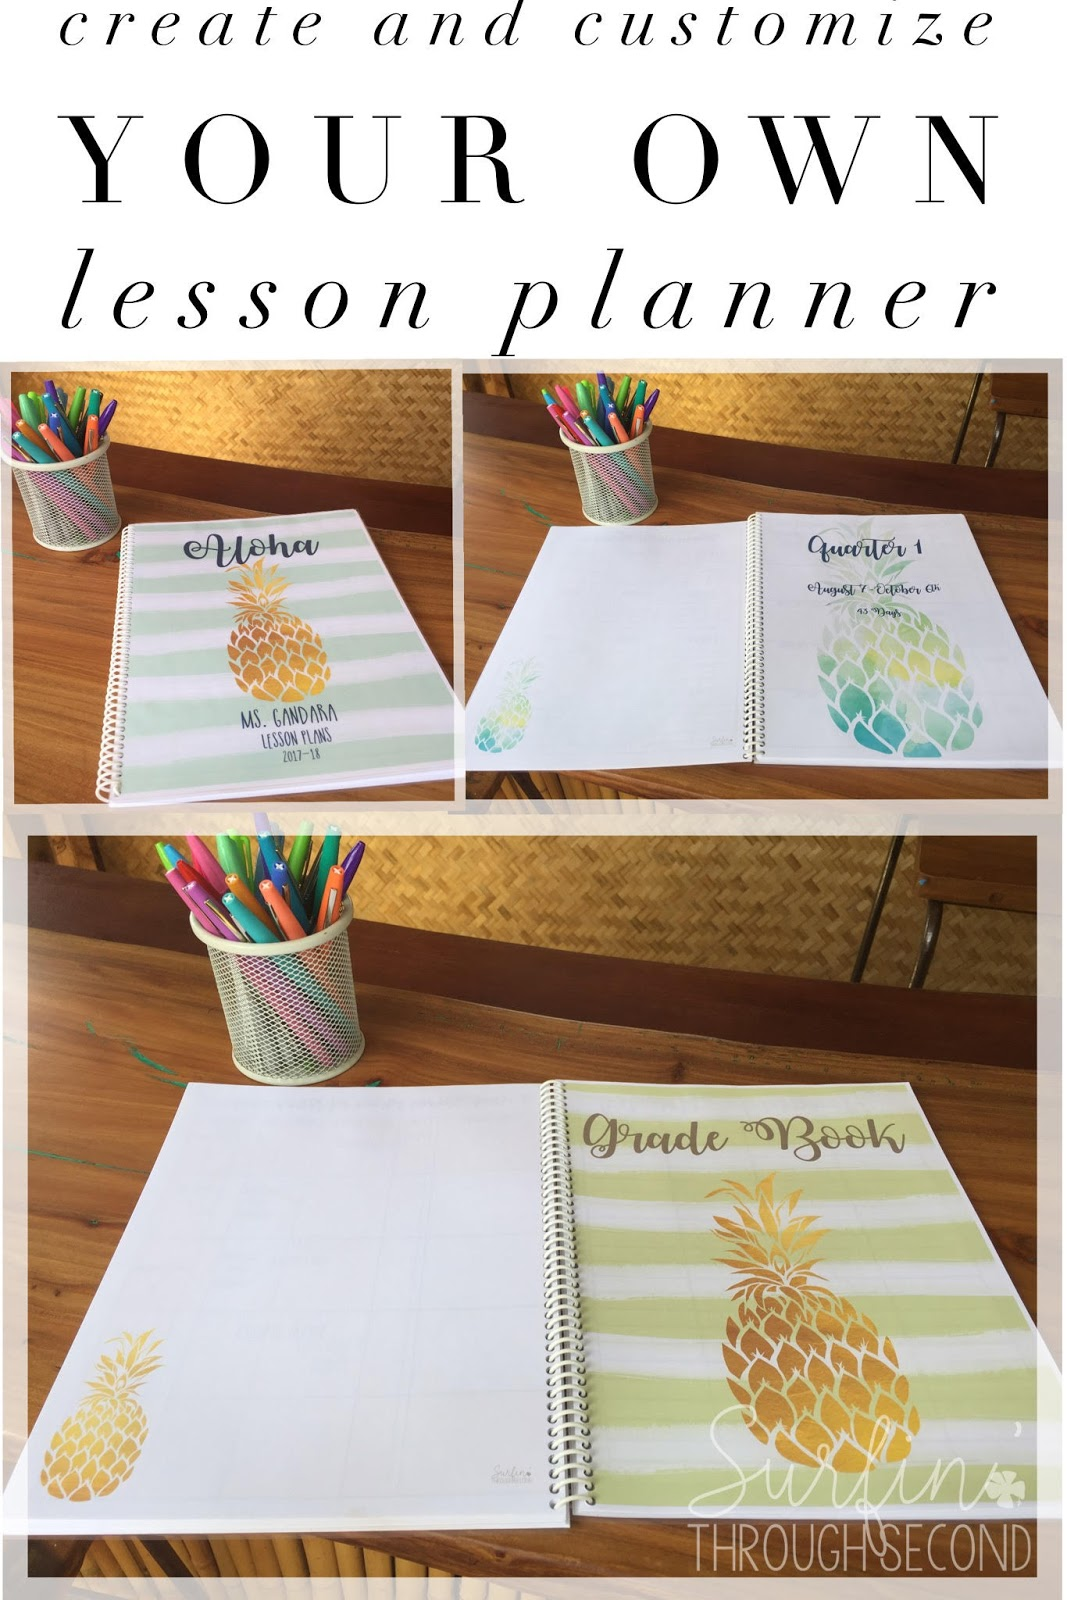 Creating Your Own Lesson Planner Surfin 39 Through Second